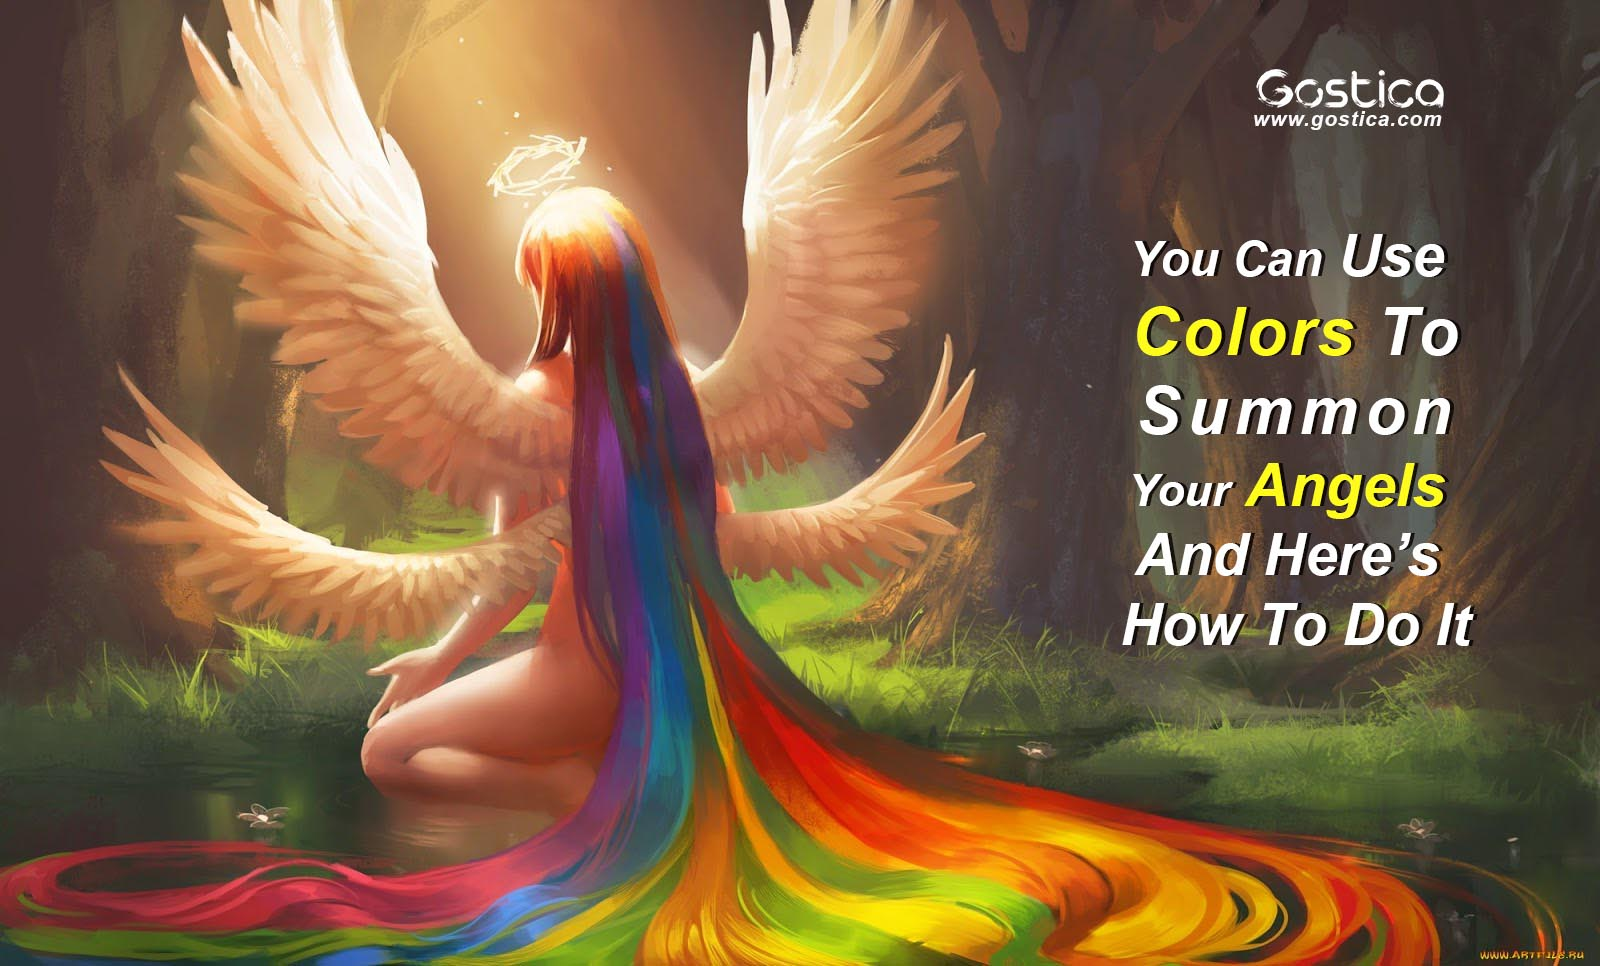 You-Can-Use-Colors-To-Summon-Your-Angels-And-Here's-How-To-Do-It.jpg